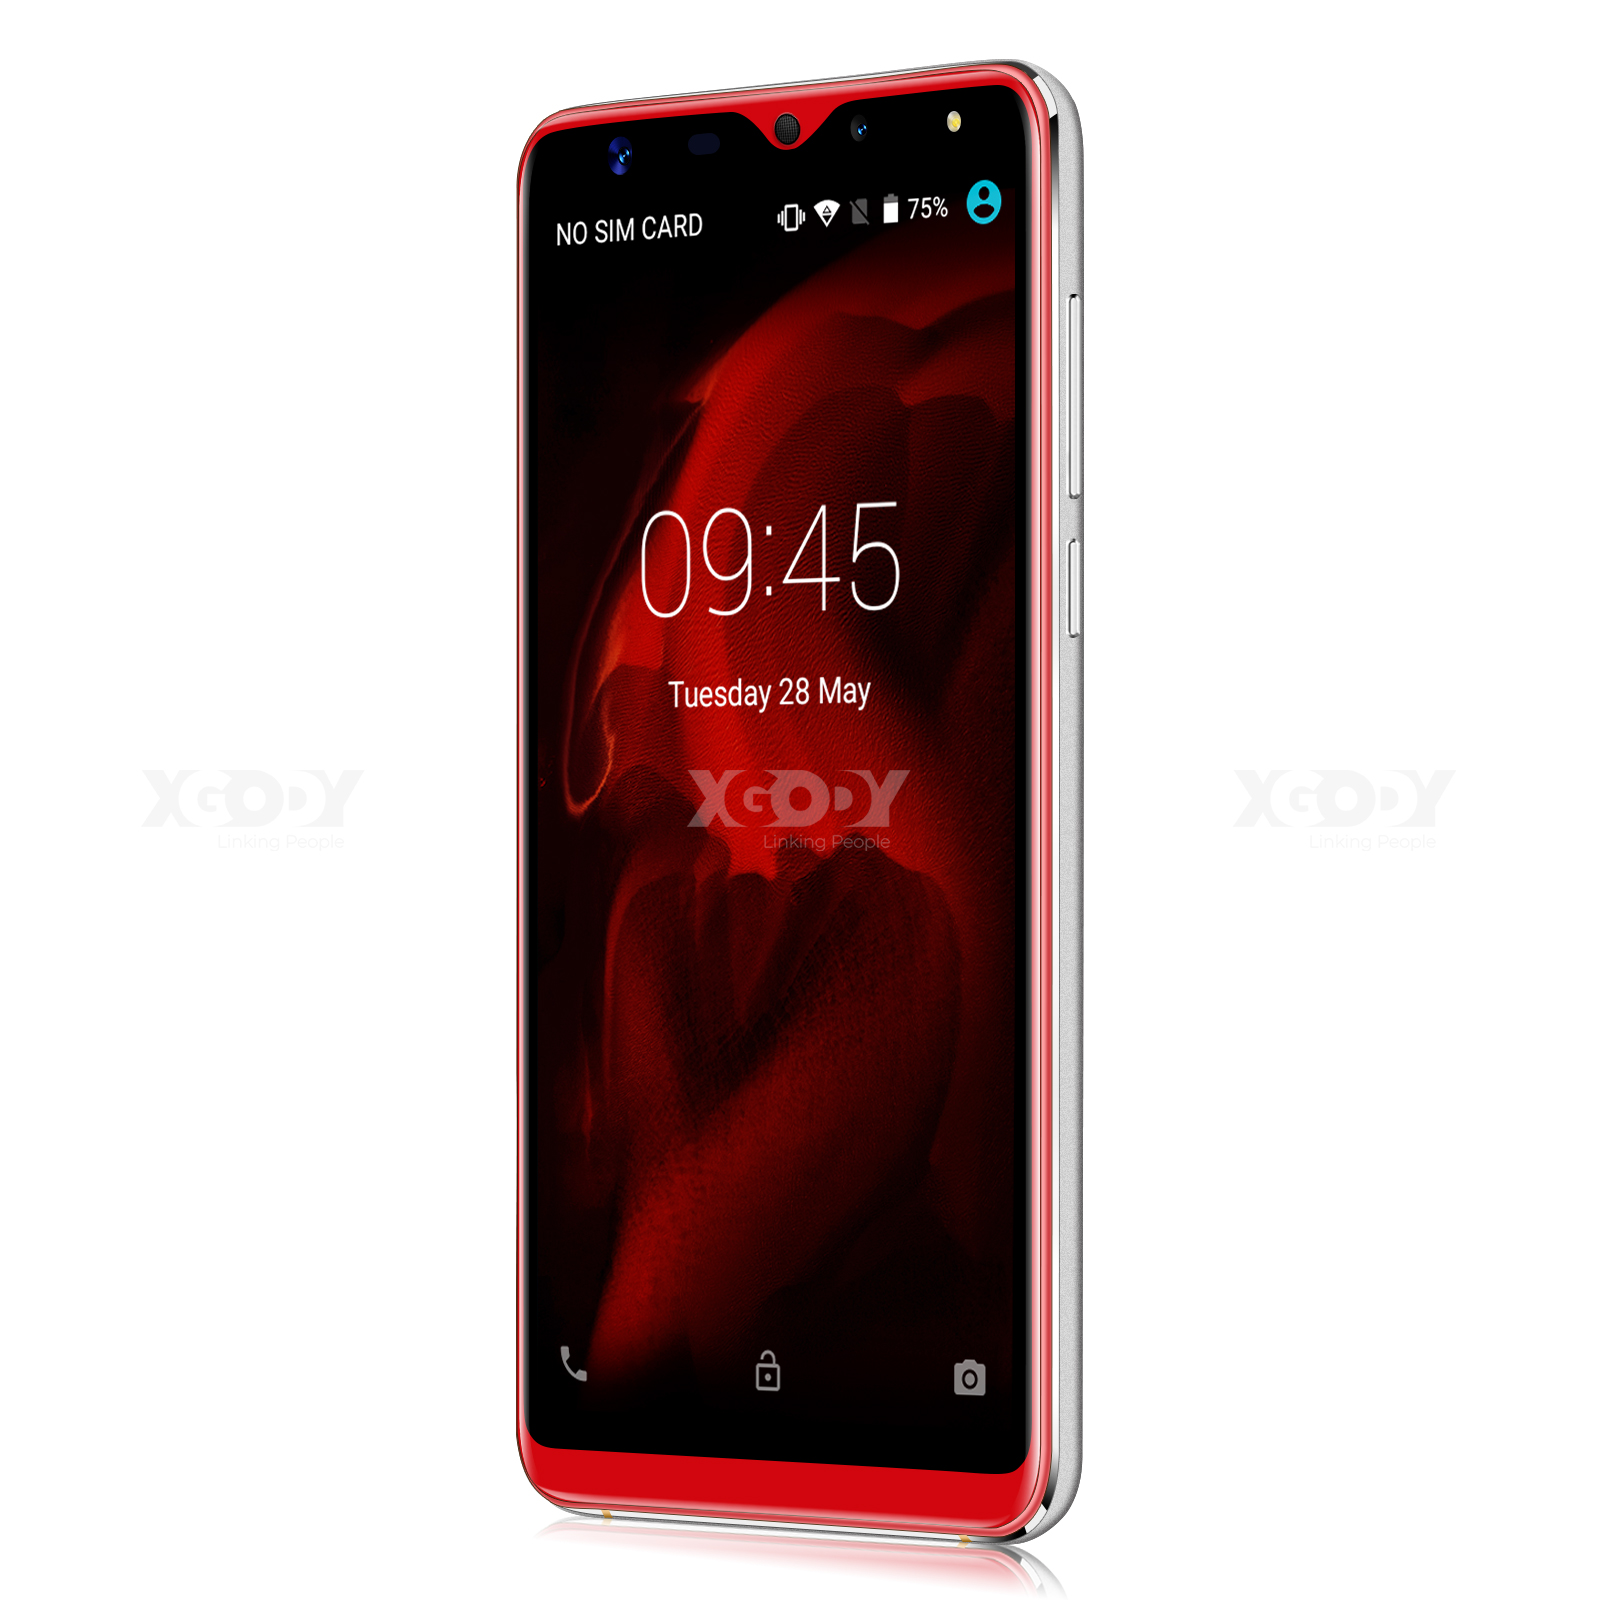 5.5'' Android 9.0 Quad Core Smartphone Dual Sim 3G Unlocked Cell Phone New XGODY 8